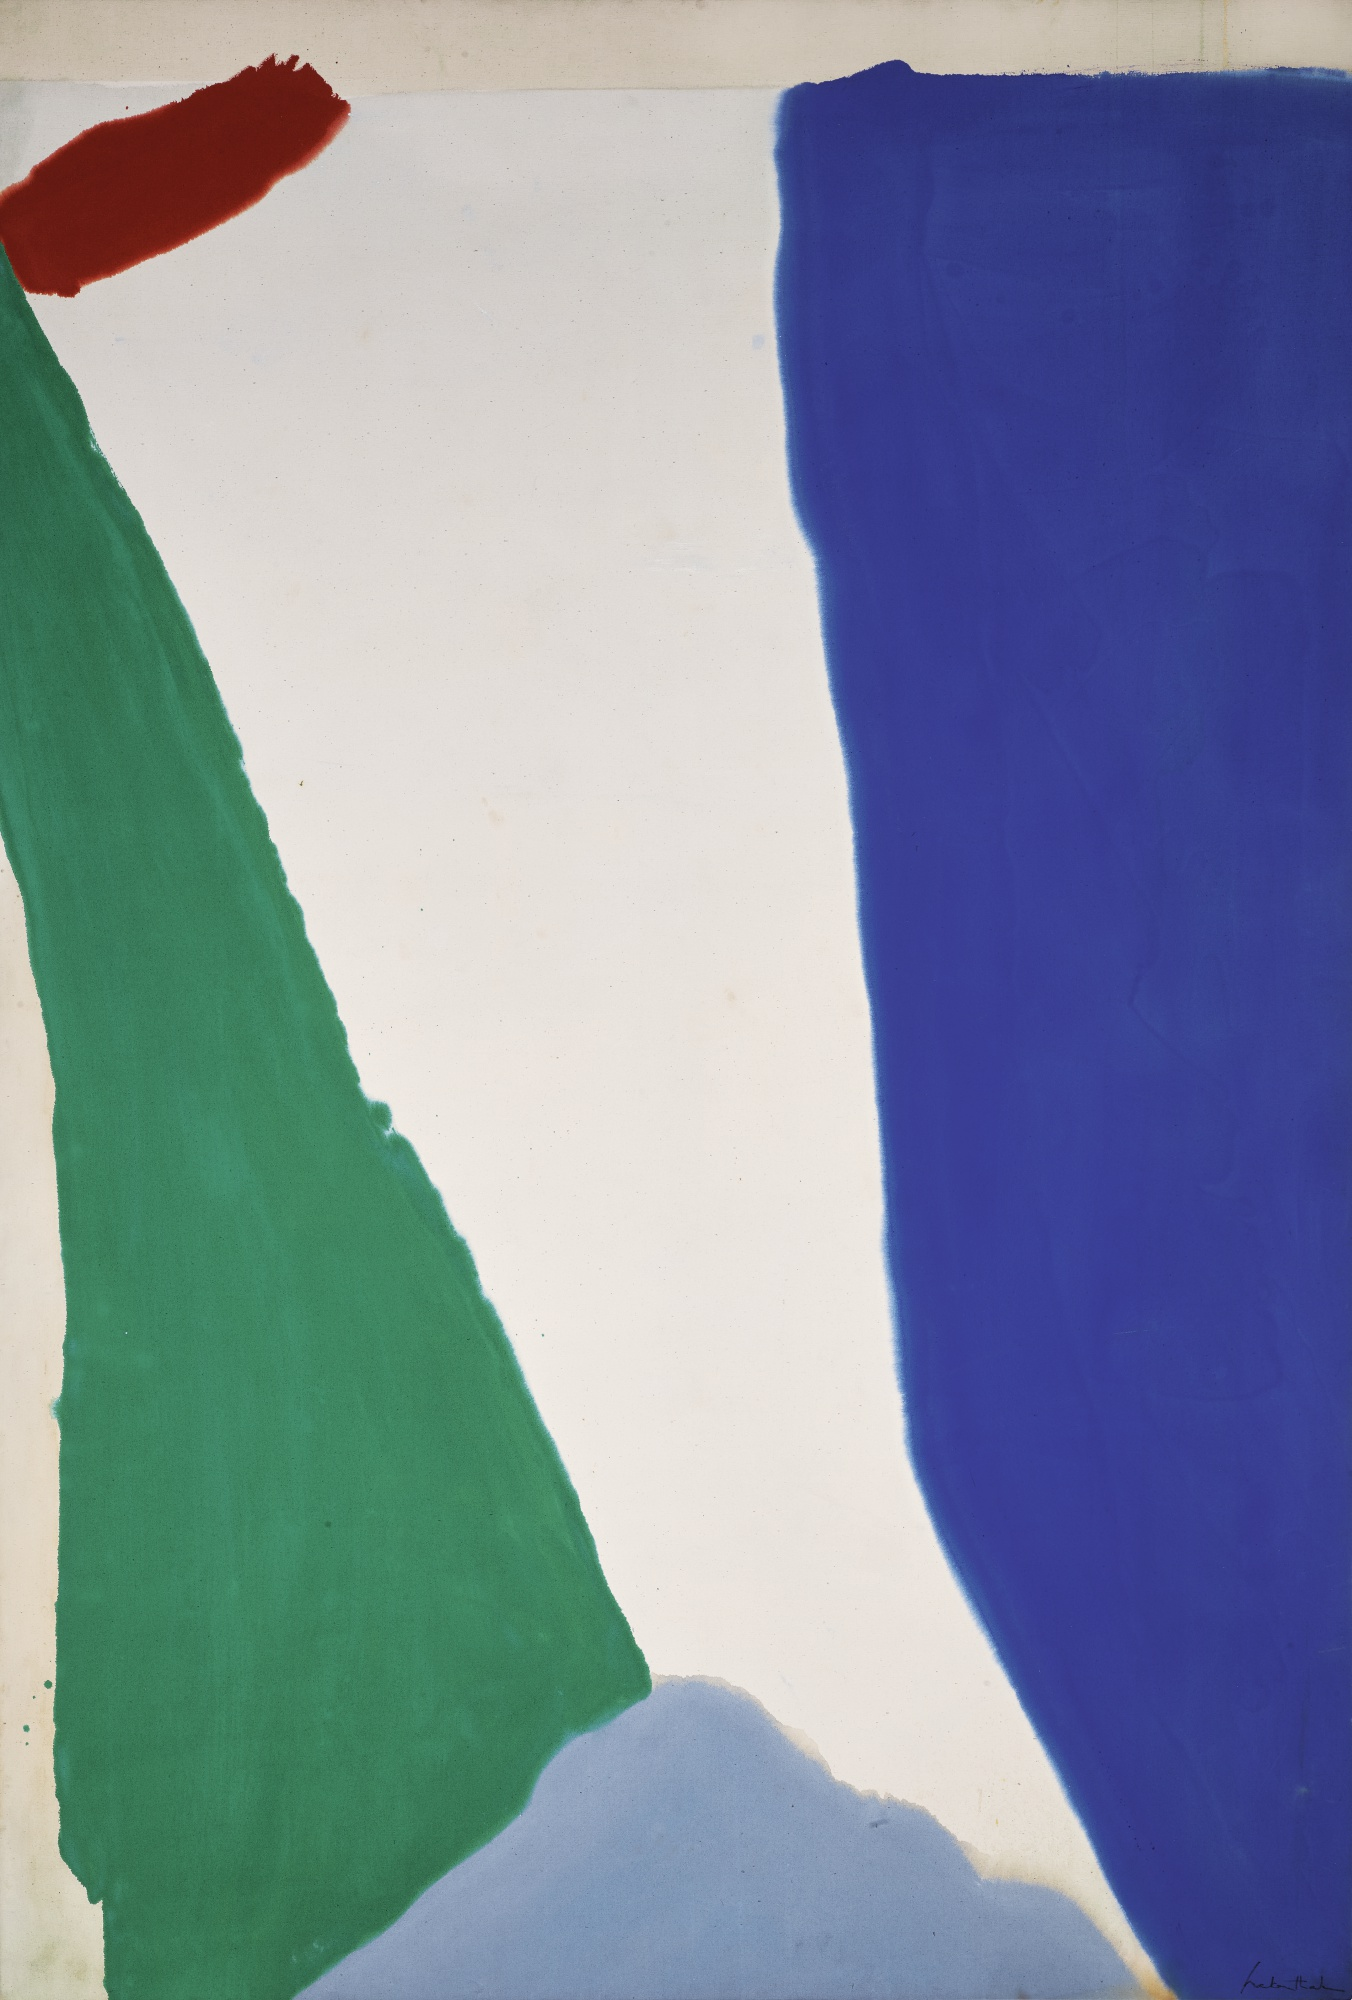 Helen Frankenthaler. Four Color Space, 1966. Auctioned at Sotheby's in 2017 for $591,000.